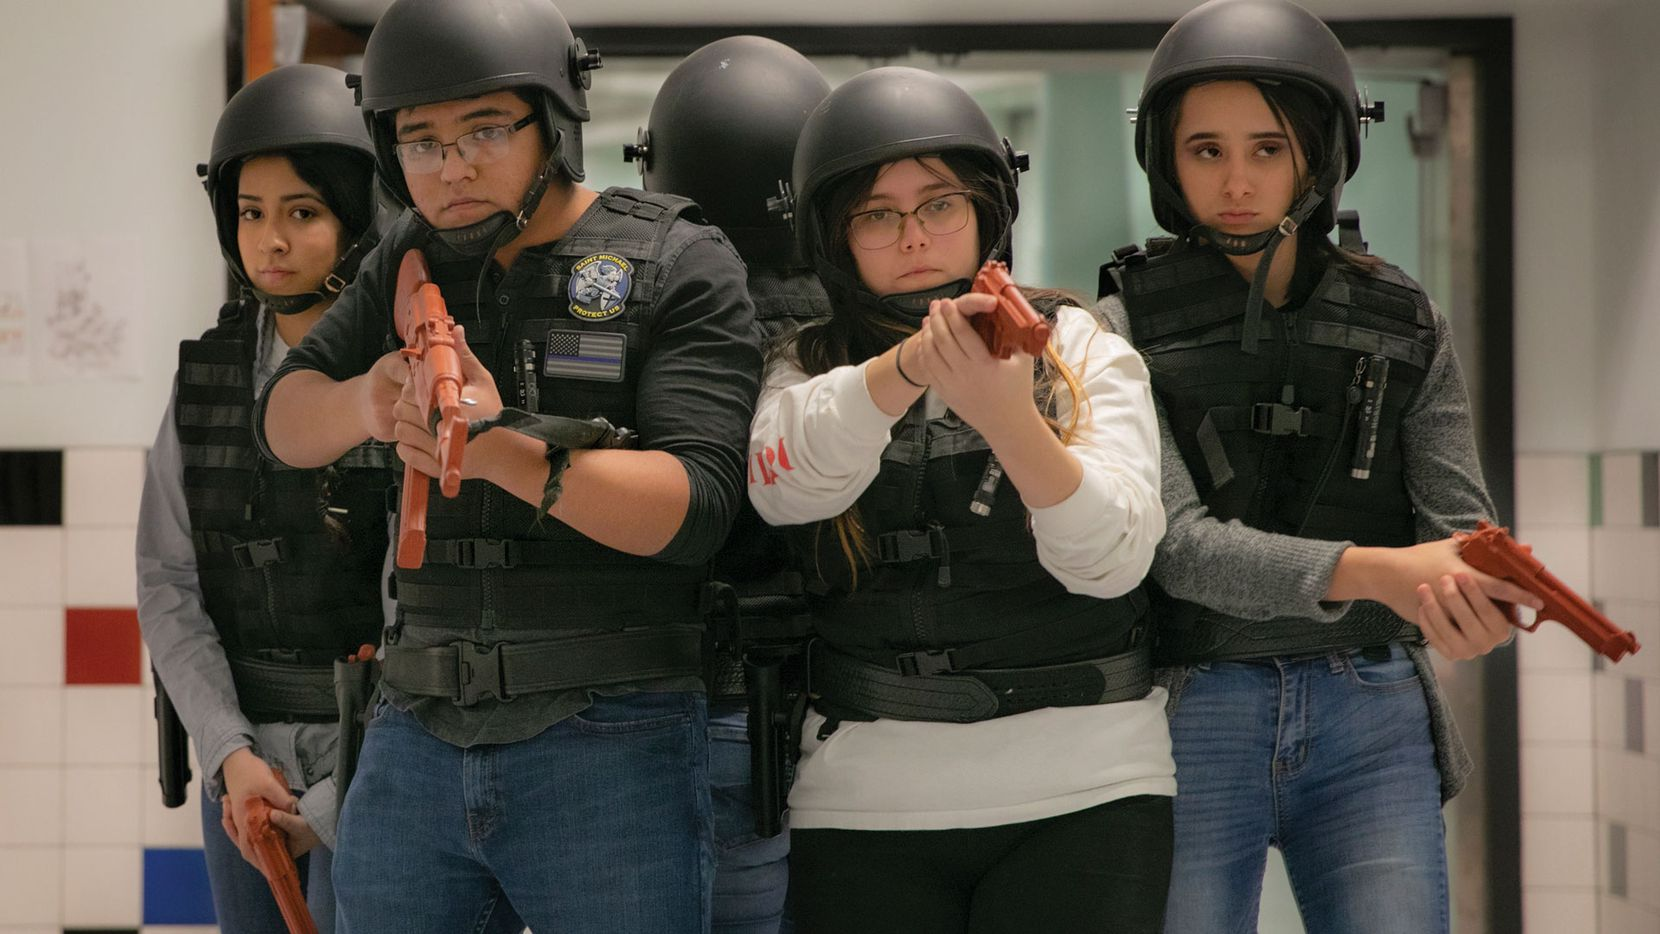 """A still from """"At the Ready,"""" a documentary about a criminal justice club at an El Paso High School. It's one of several Texas-set films screening at the 2021 Dallas International Film Festival."""